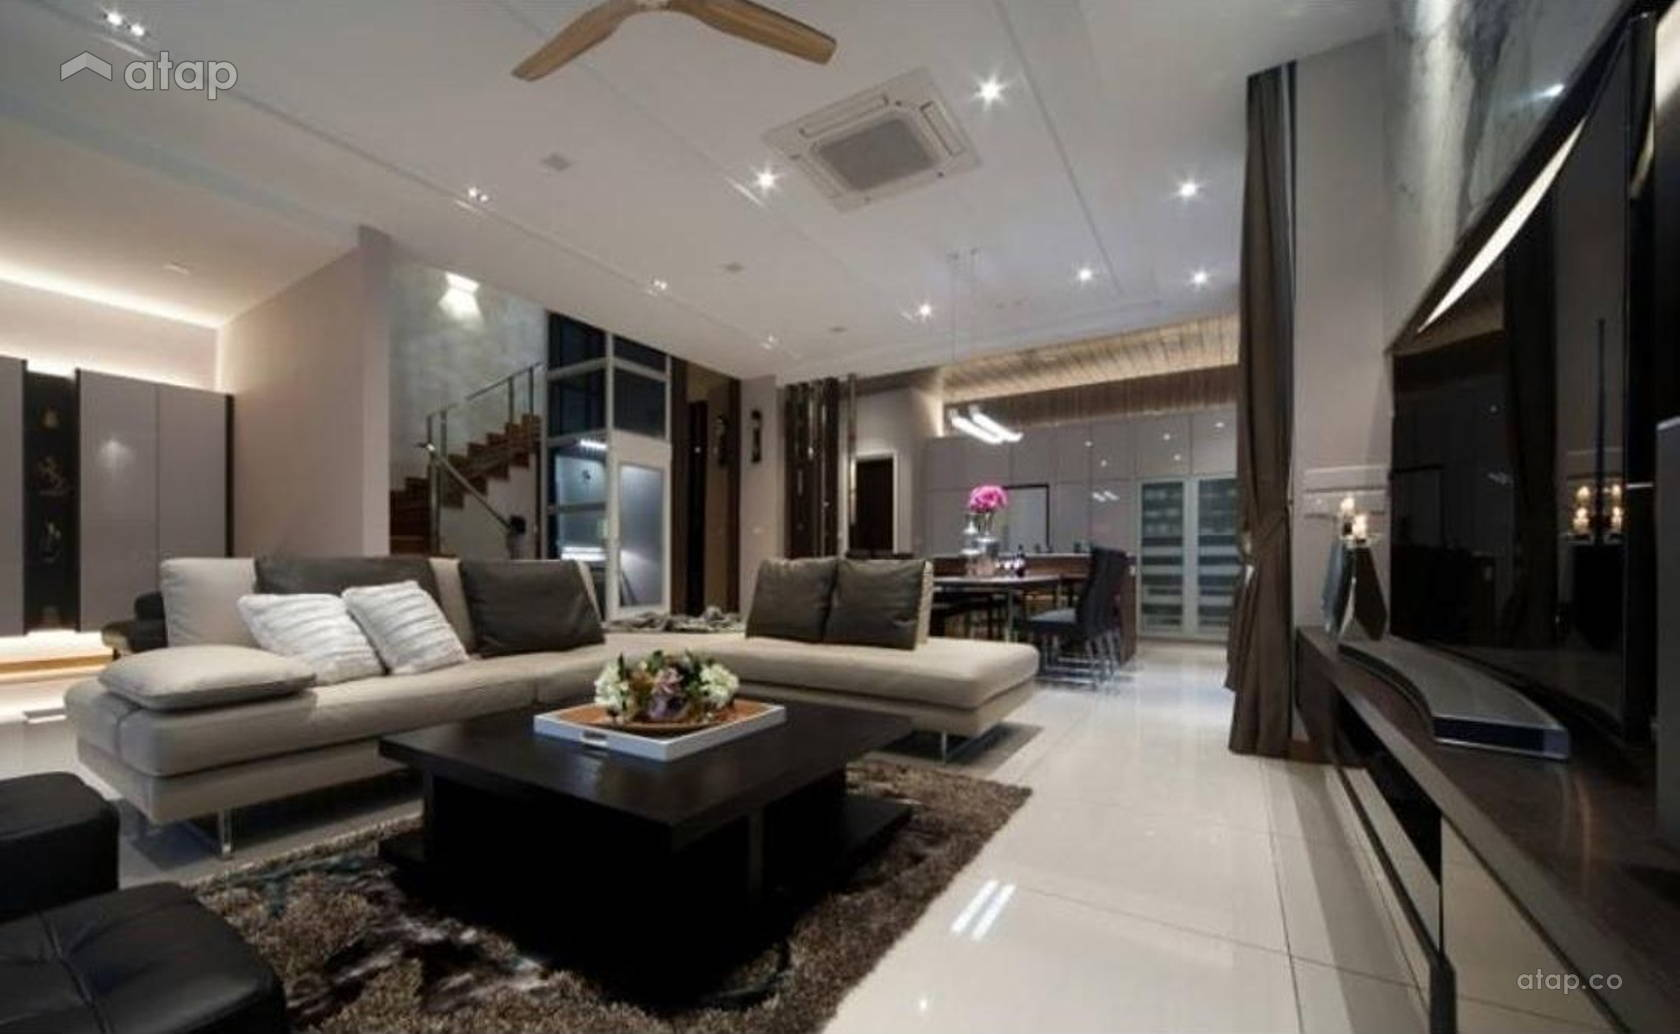 semi-d living room design  Semi-D interior design renovation ideas, photos and price in ...